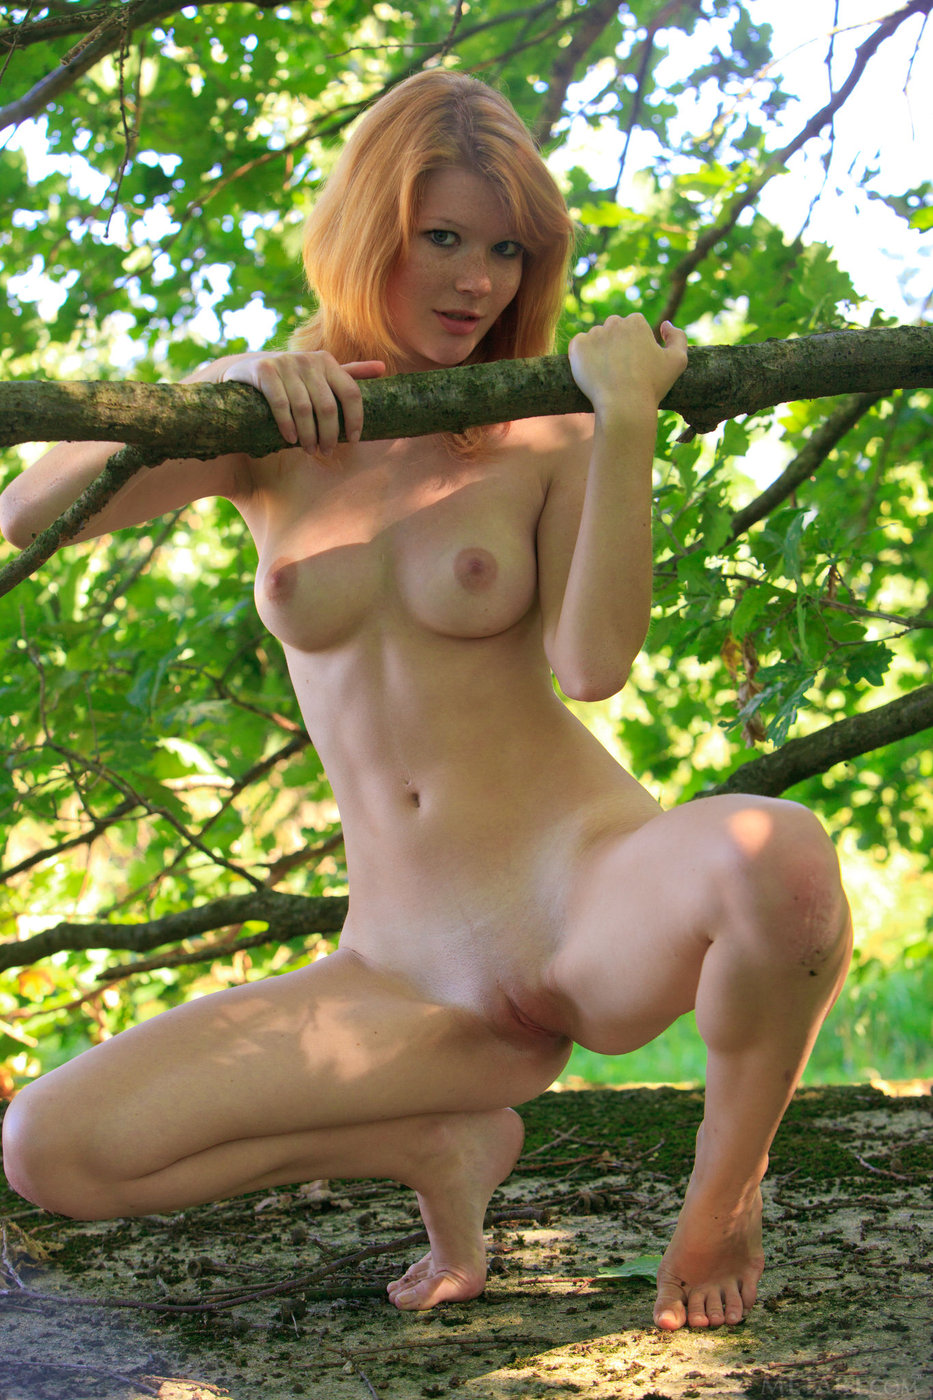 Redheaded vixen gets naked in the forest and spreads her legs